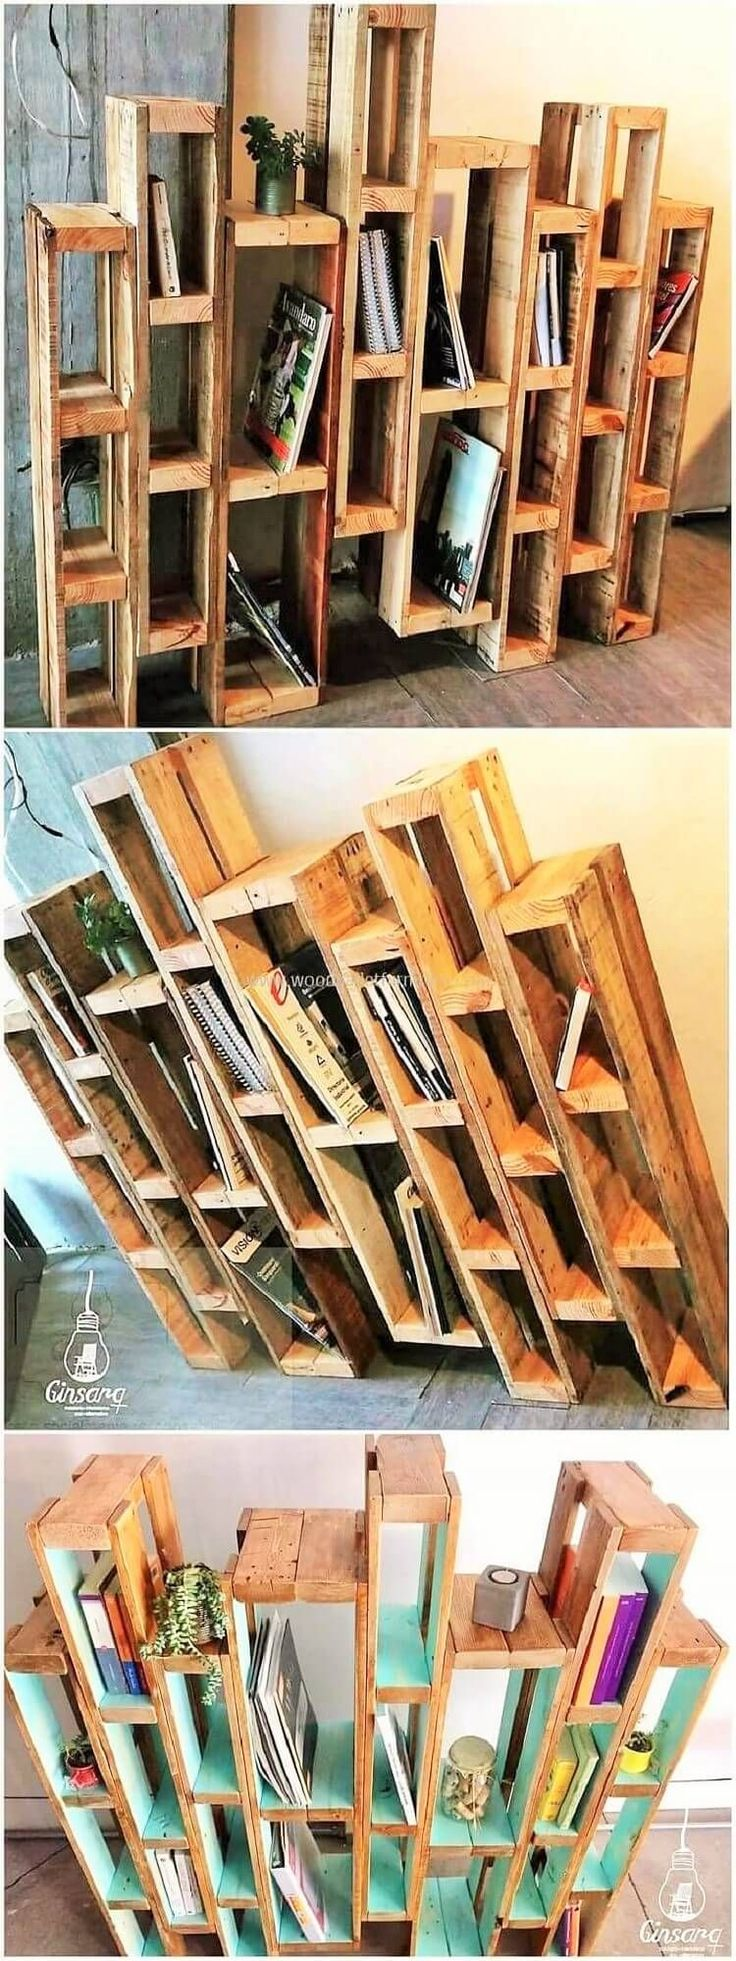 10+ Unique Wood Pallet Project Ideas That Are Easy to Make